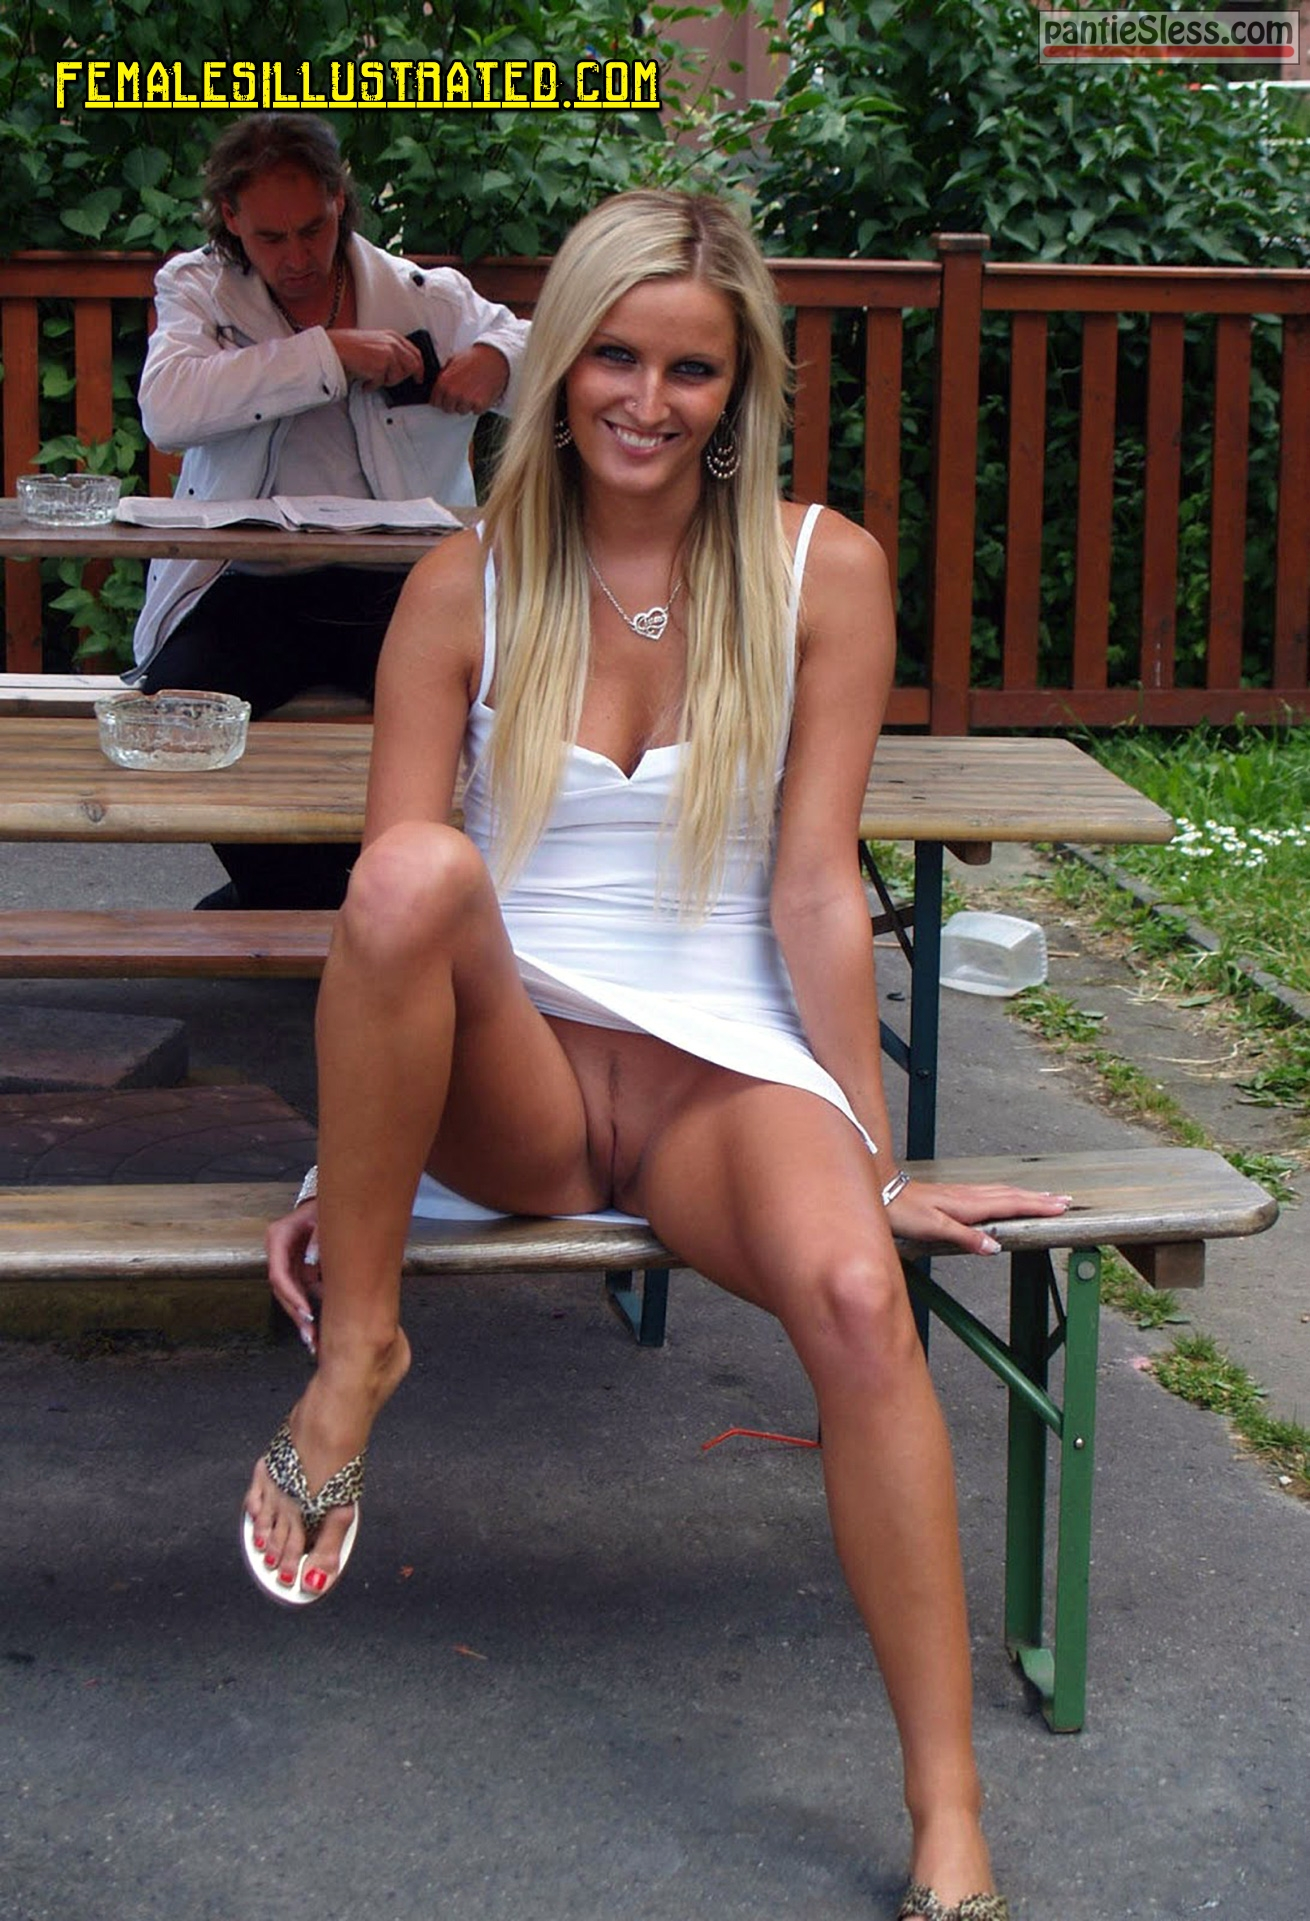 upskirt shaved pussy public flashing hotwife blonde  Slim blond flashing pussy and smiling in front of stranger